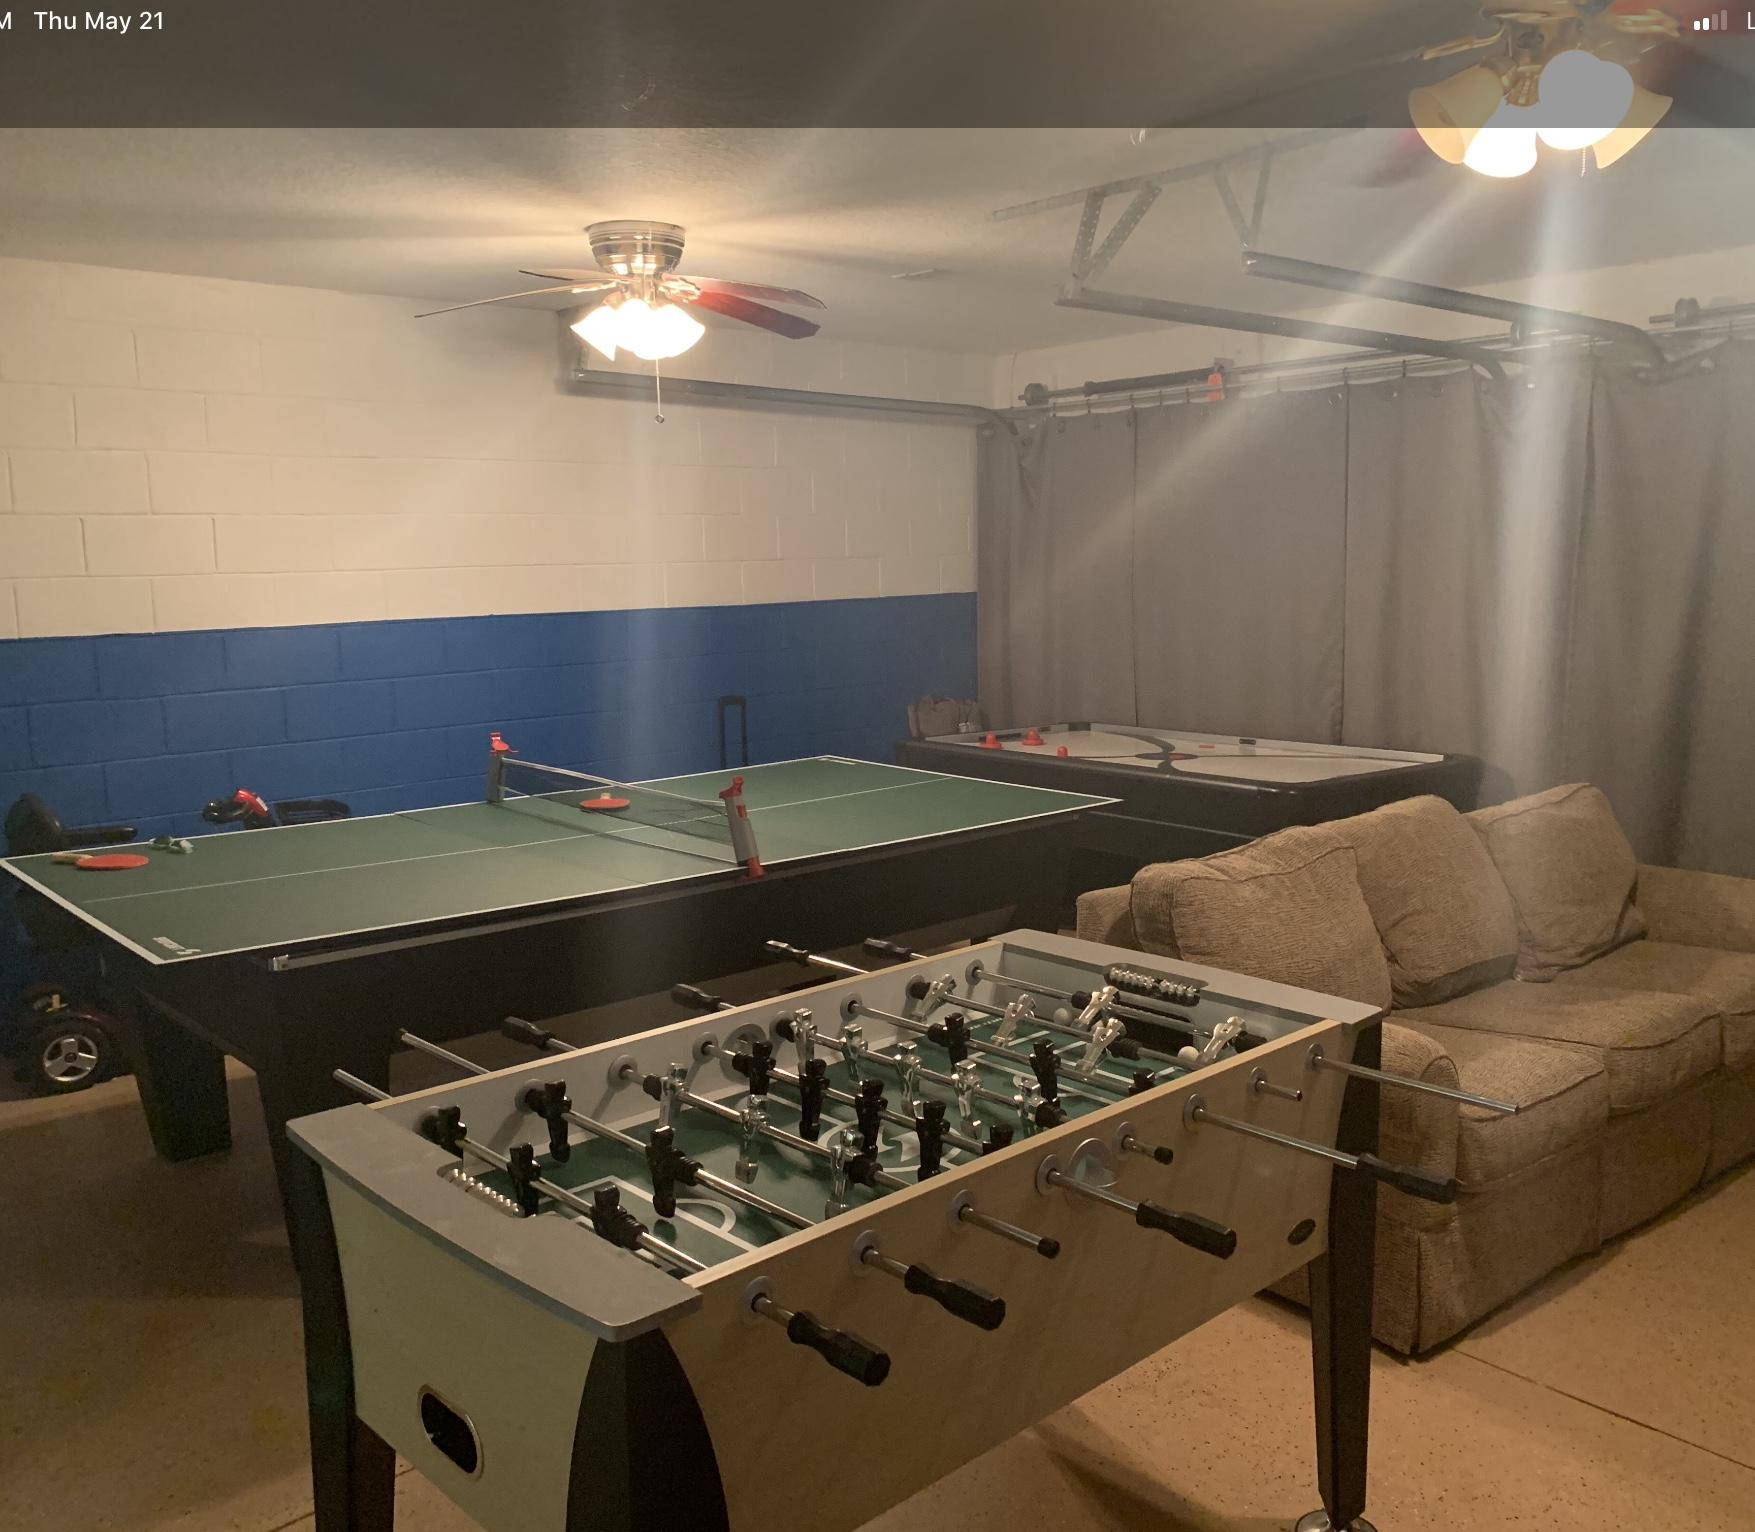 Game Room Pool Plus 4 Sets of Golf Clubs